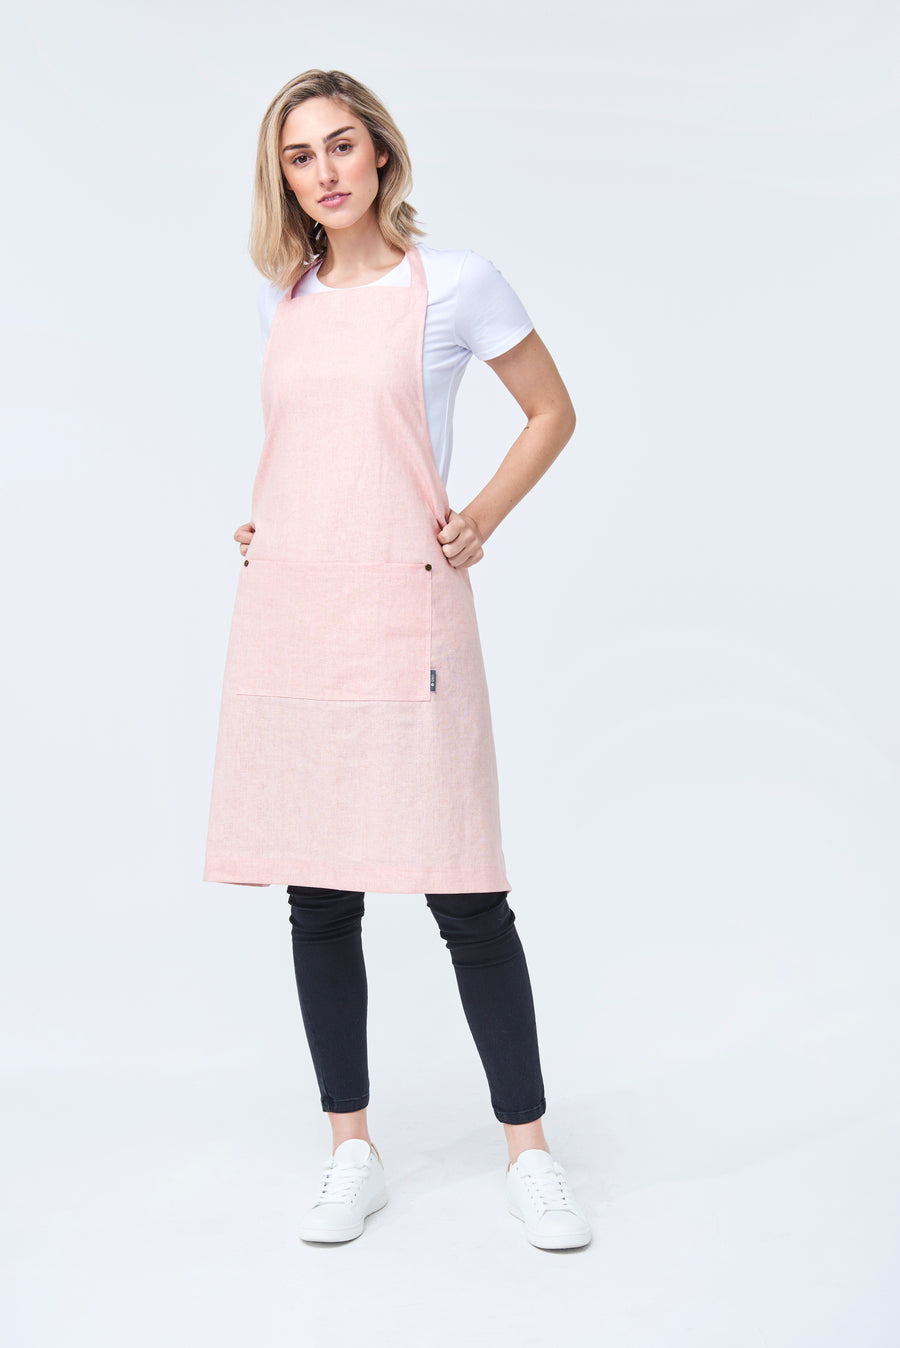 PRE ORDER CLEMENTINE BIB Apron with metal trims - Blush Linen